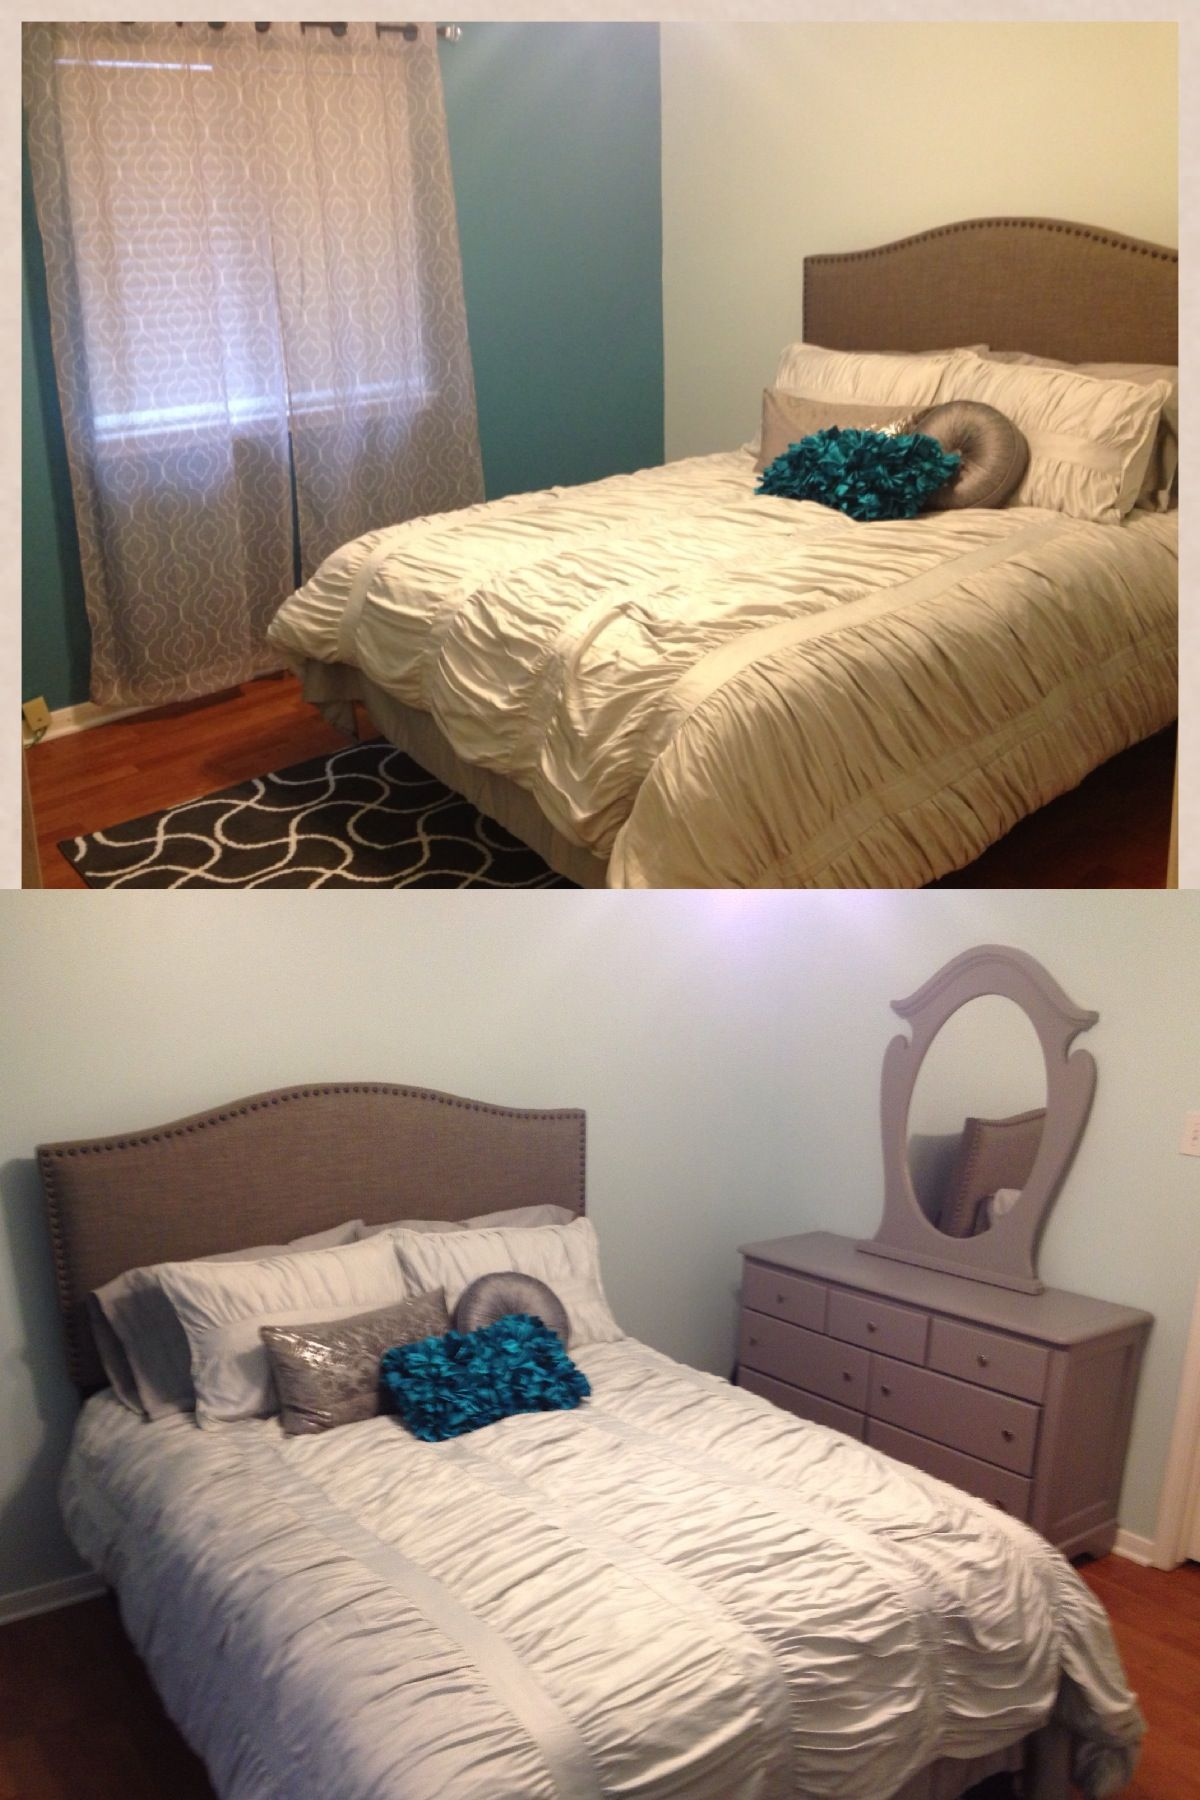 Modern young adult bedroom in turquoise and gray. Young